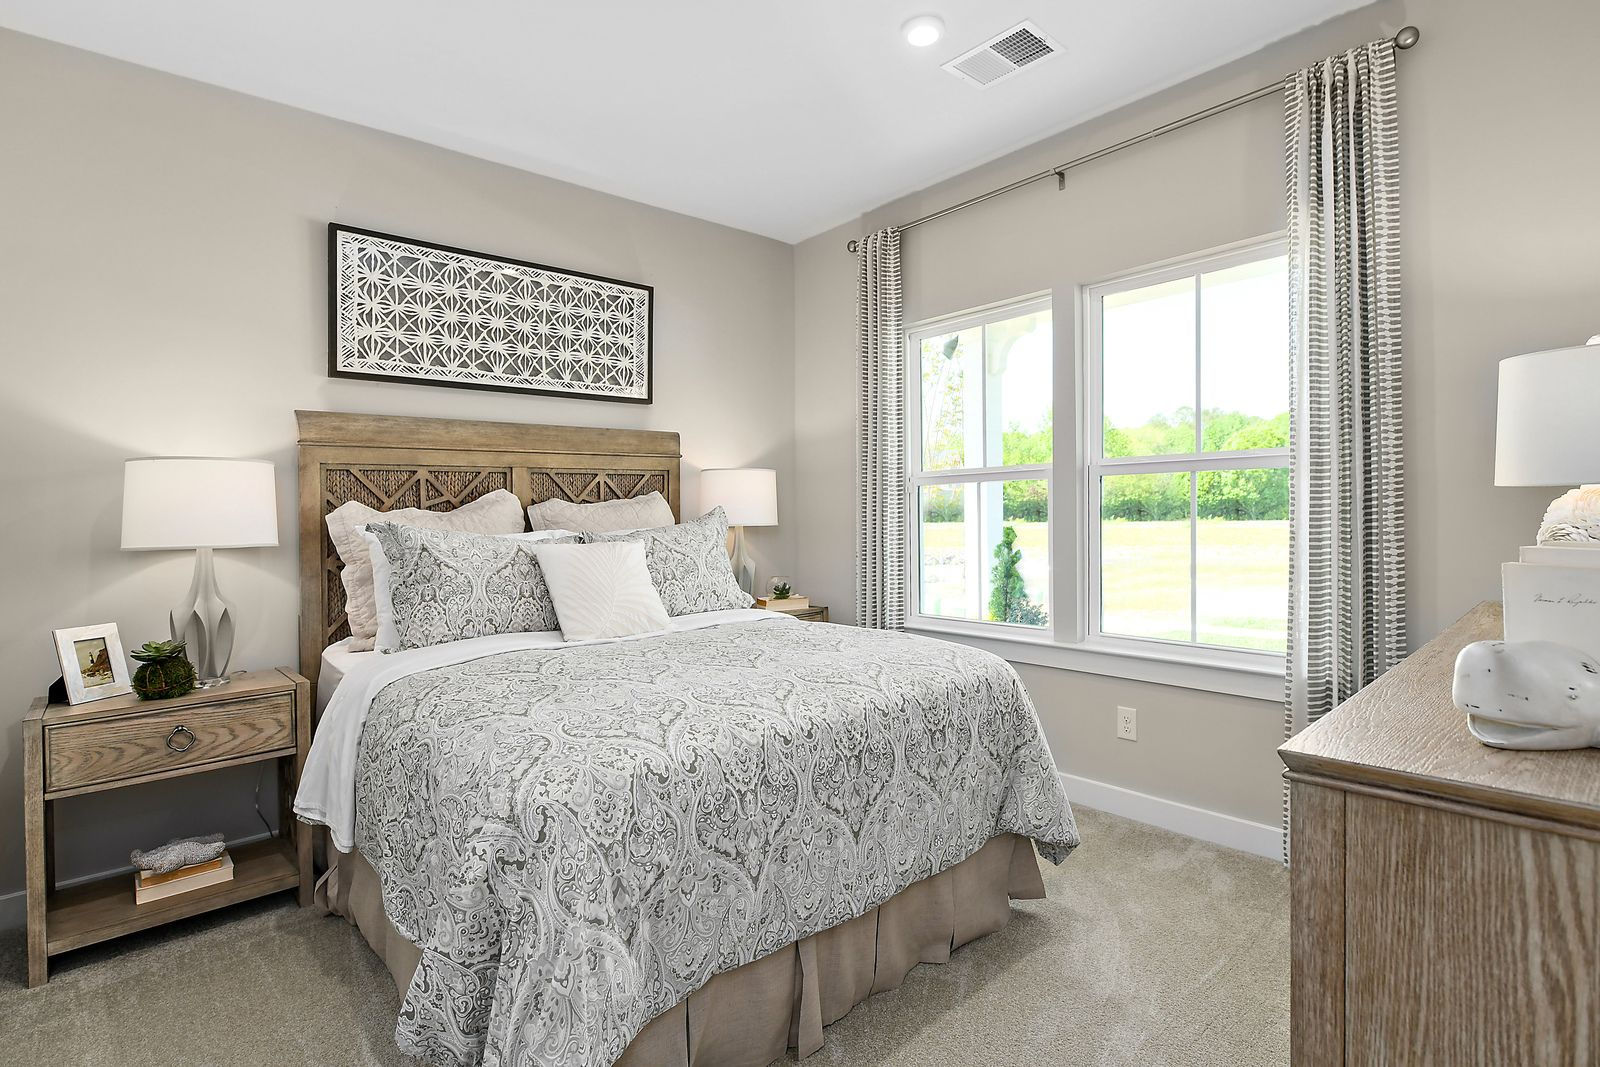 Bedroom featured in the Ashbrooke By Ryan Homes in Cleveland, OH